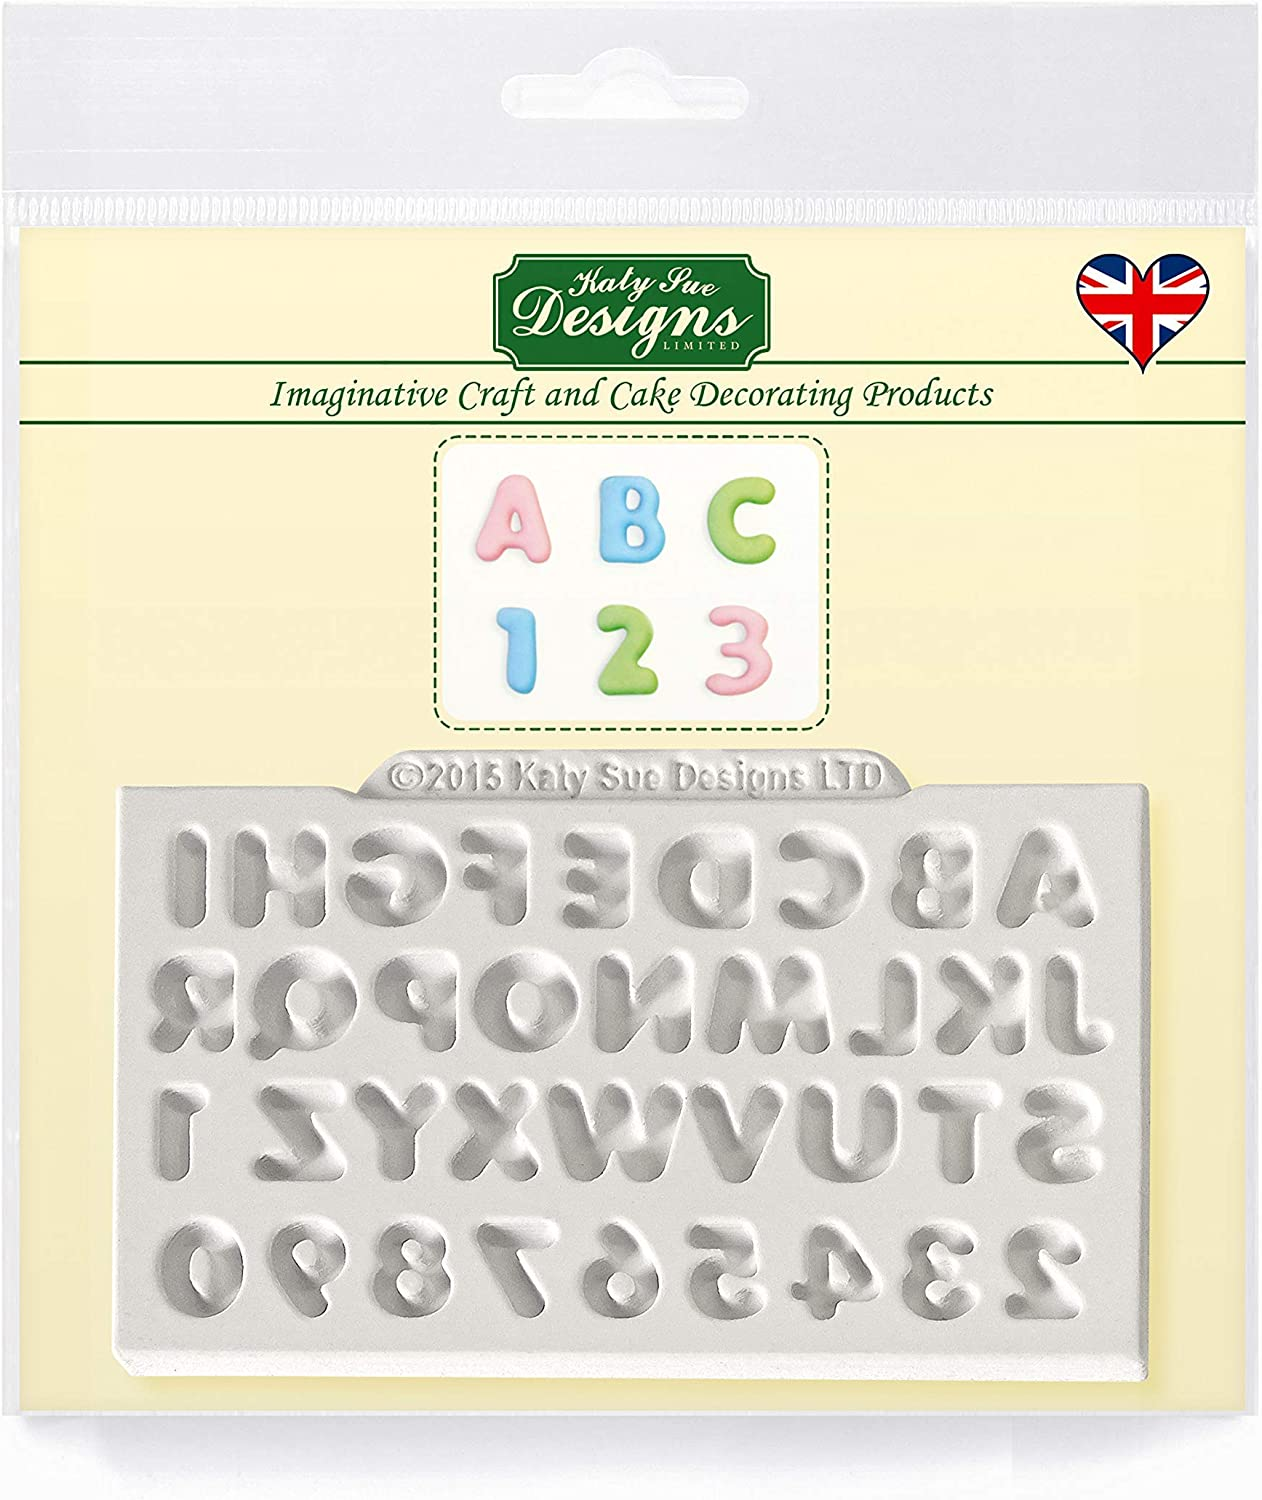 Mini Domed Alphabet Silicone Mold for Cake Decorating, Crafts, Cupcakes, Sugarcraft, Candies, Cards and Clay, Food Safe